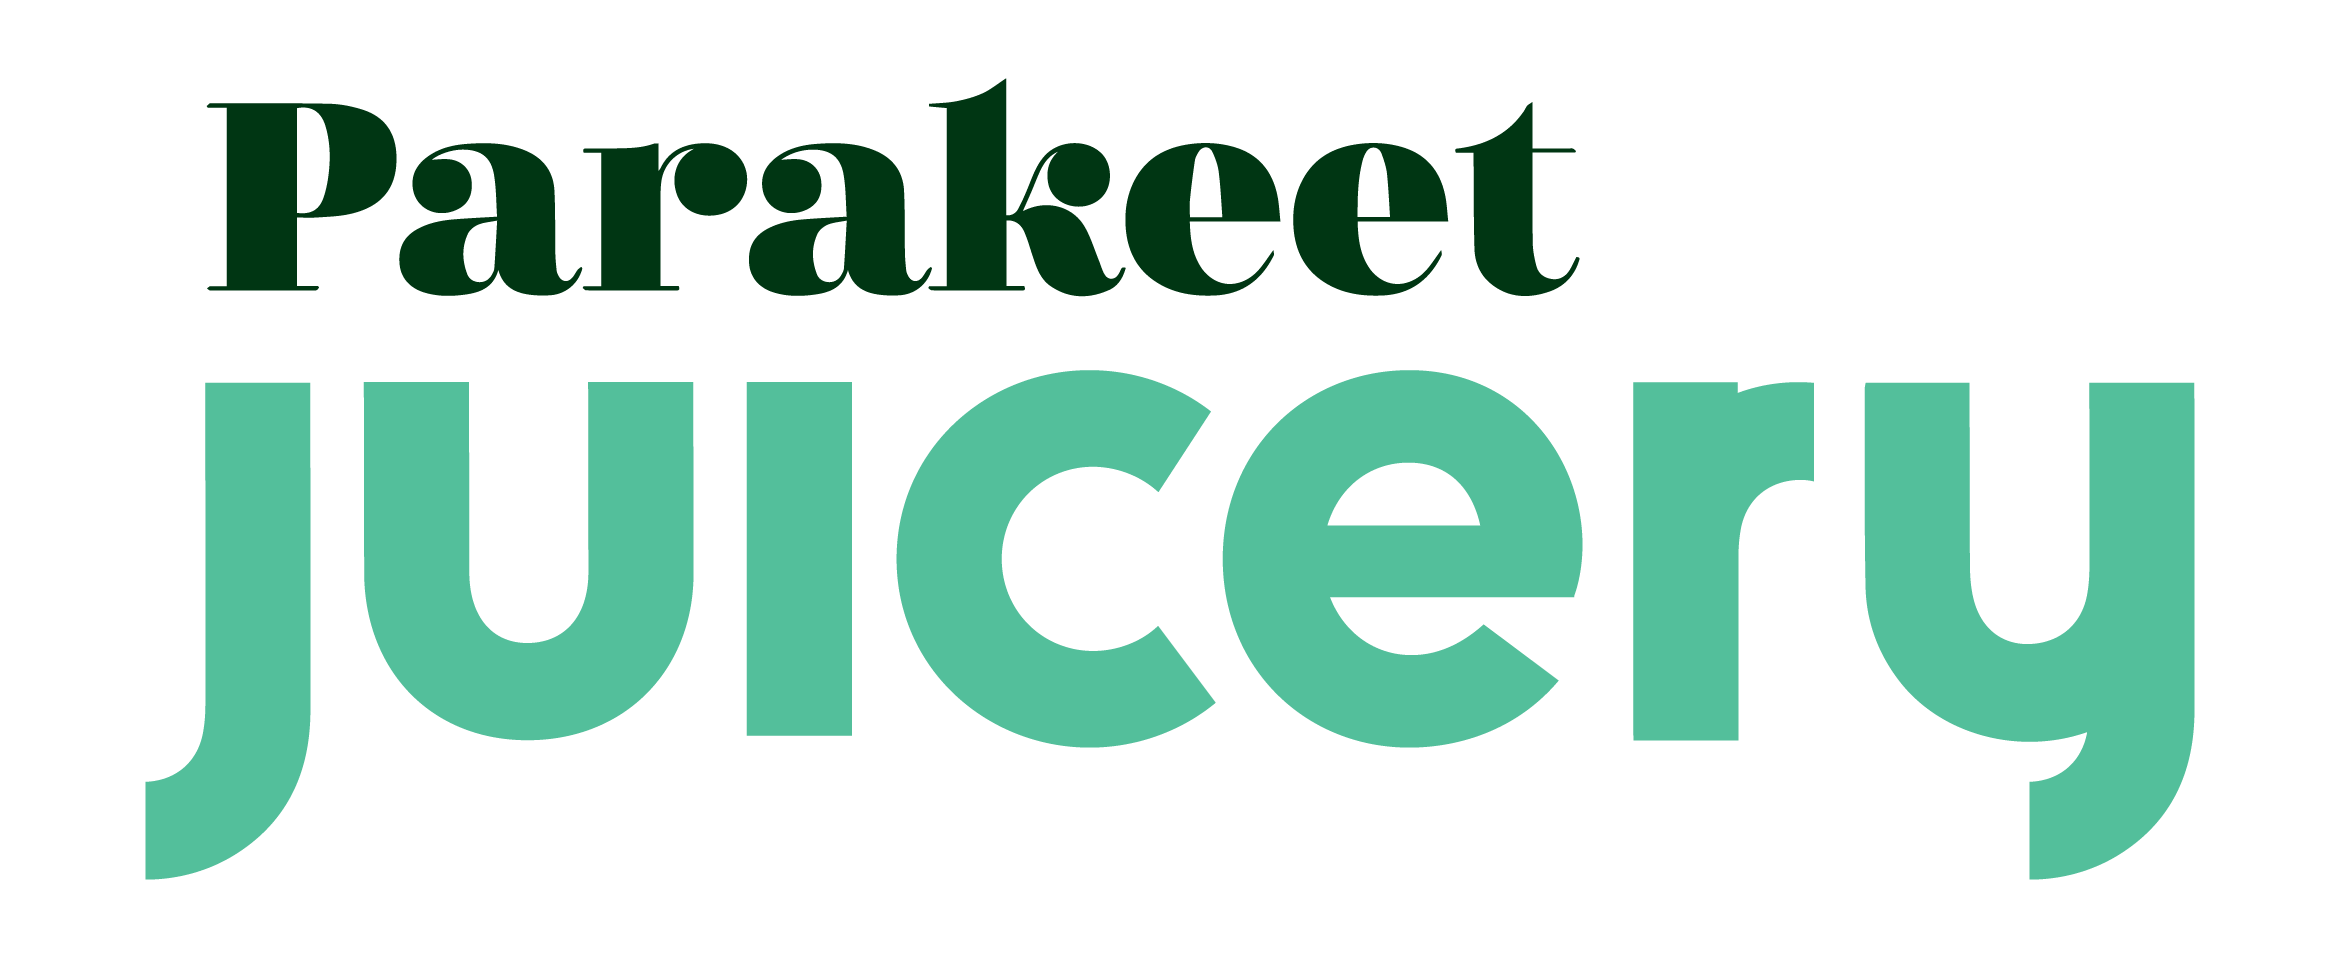 Parakeet Juicery Home